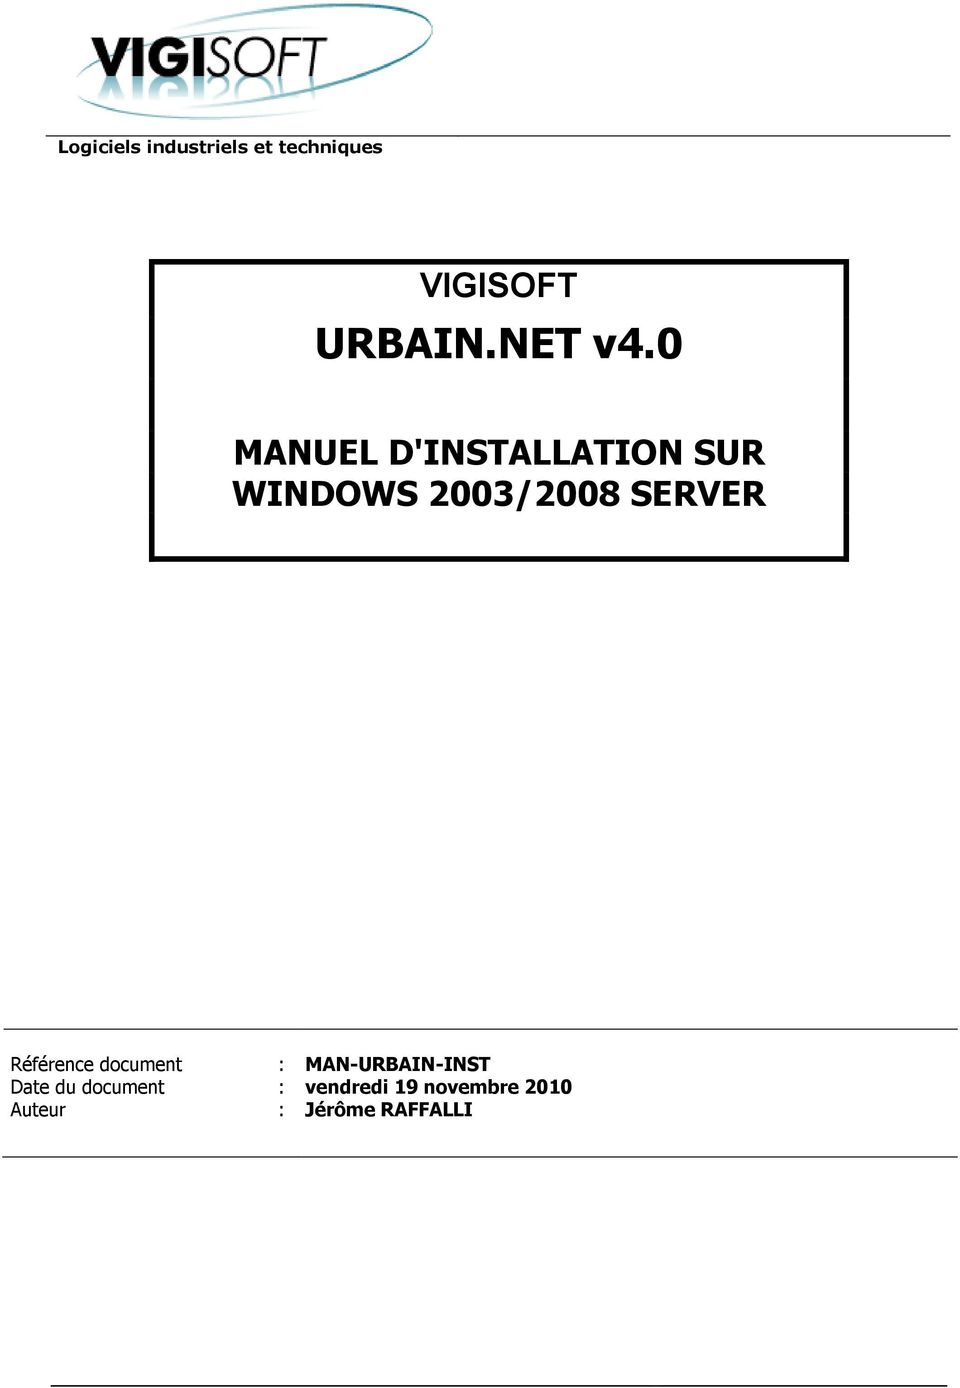 0 MANUEL D'INSTALLATION SUR WINDOWS 2003/2008 SERVER